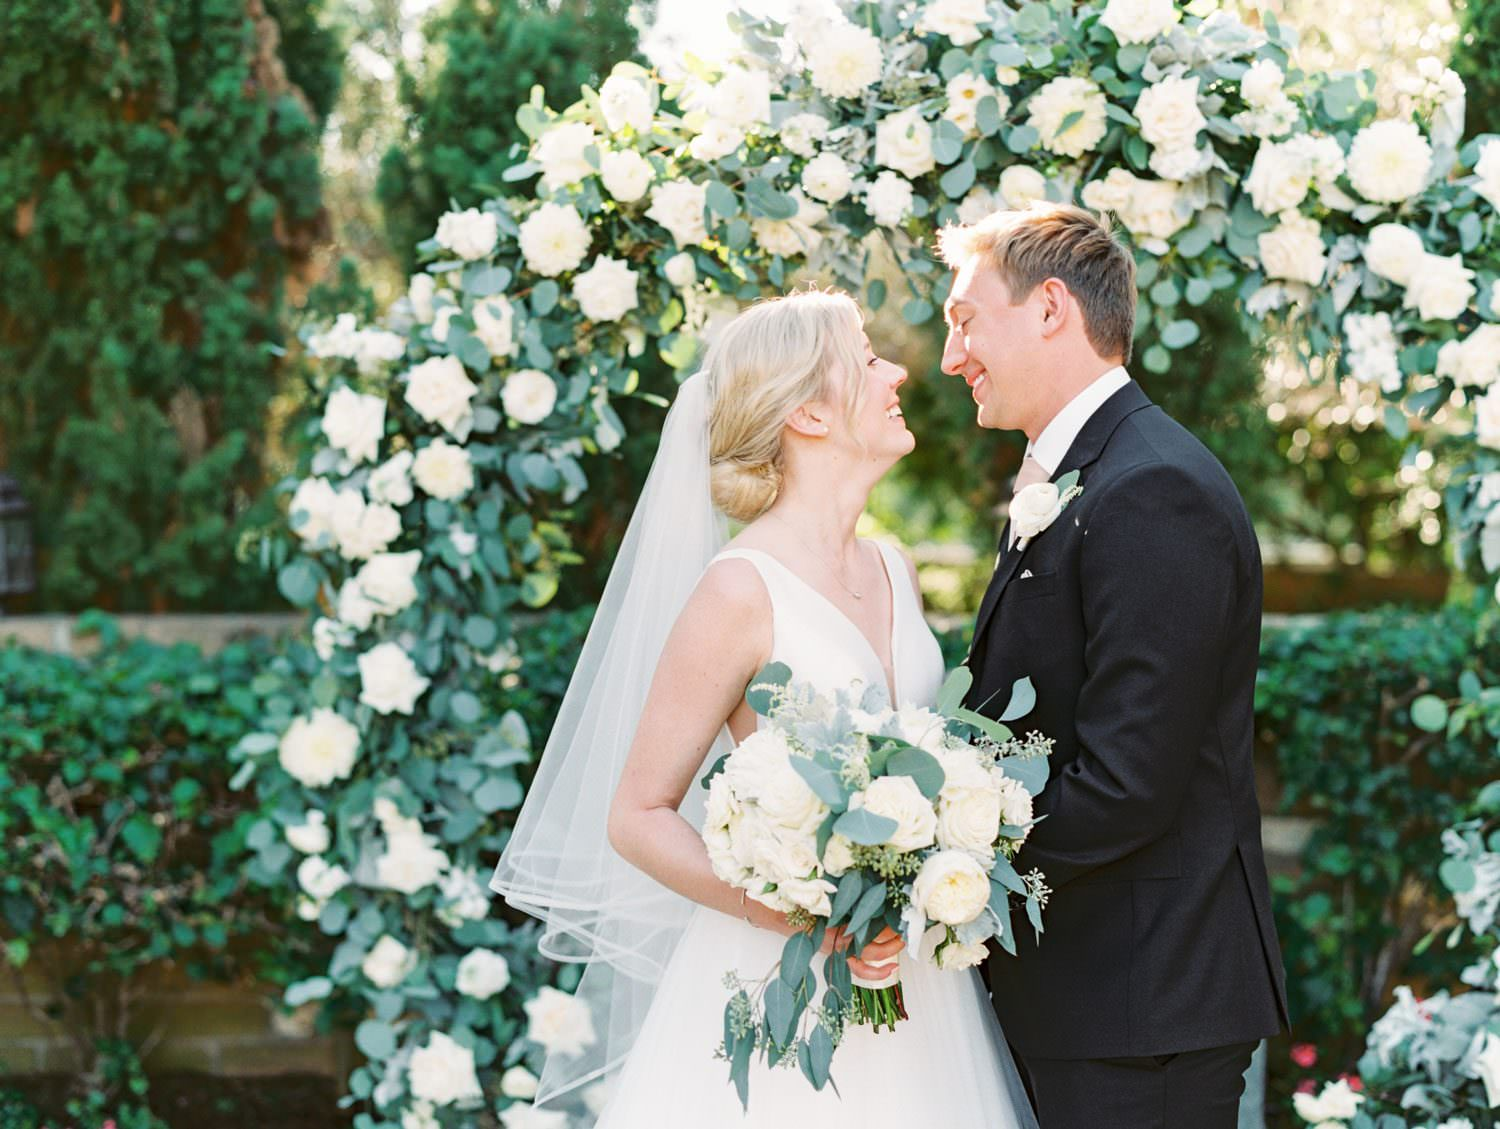 Bride and groom smiling at each other. Bride's hair in low bun with veil. Circular ceremony arch with silver dollar eucalyptus, white dahlias and roses. Estancia La Jolla wedding shot on film by Cavin Elizabeth Photography